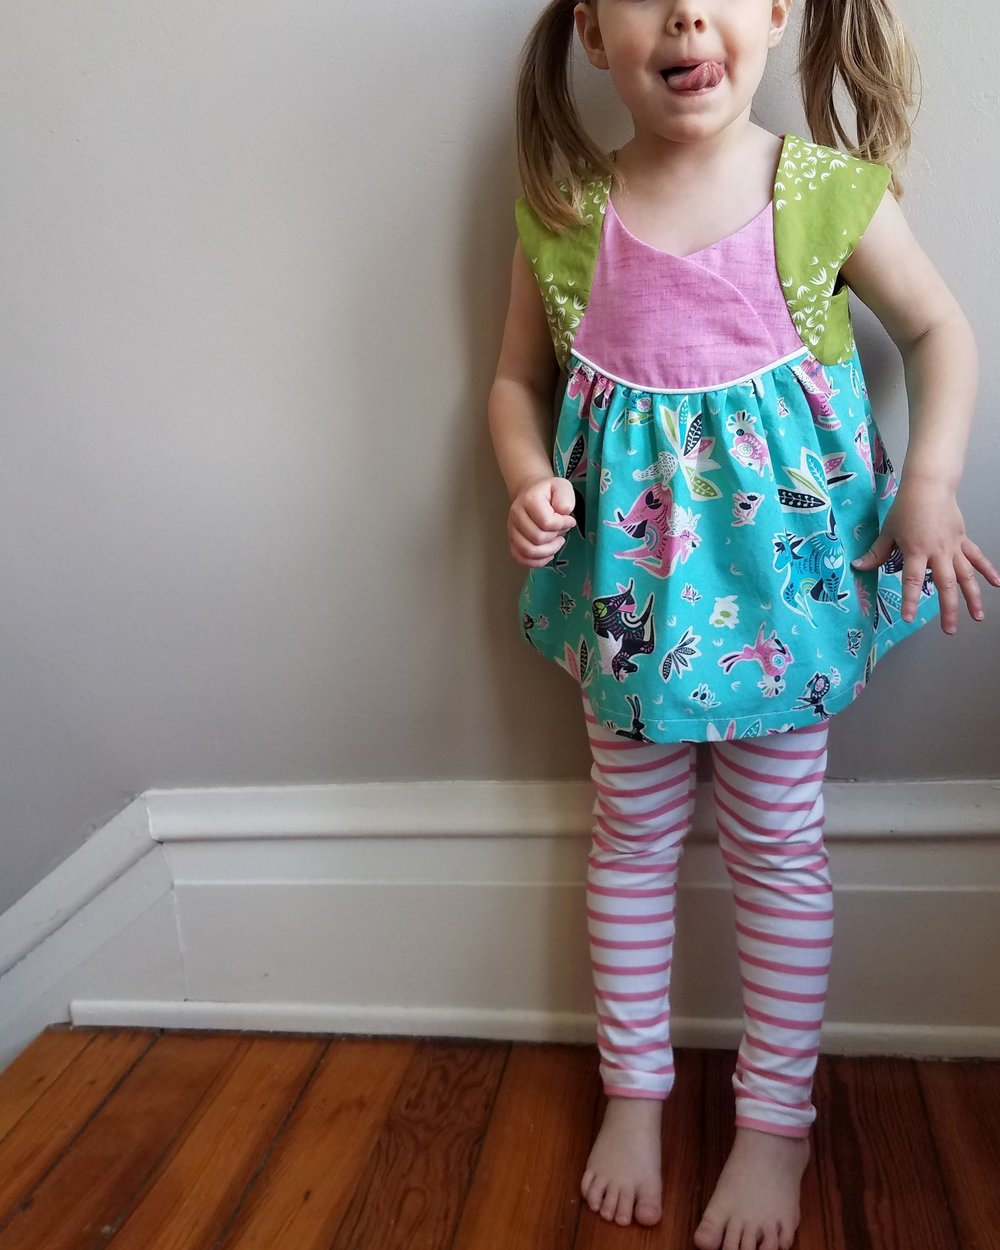 Modeled with coordinating mama-made leggings.